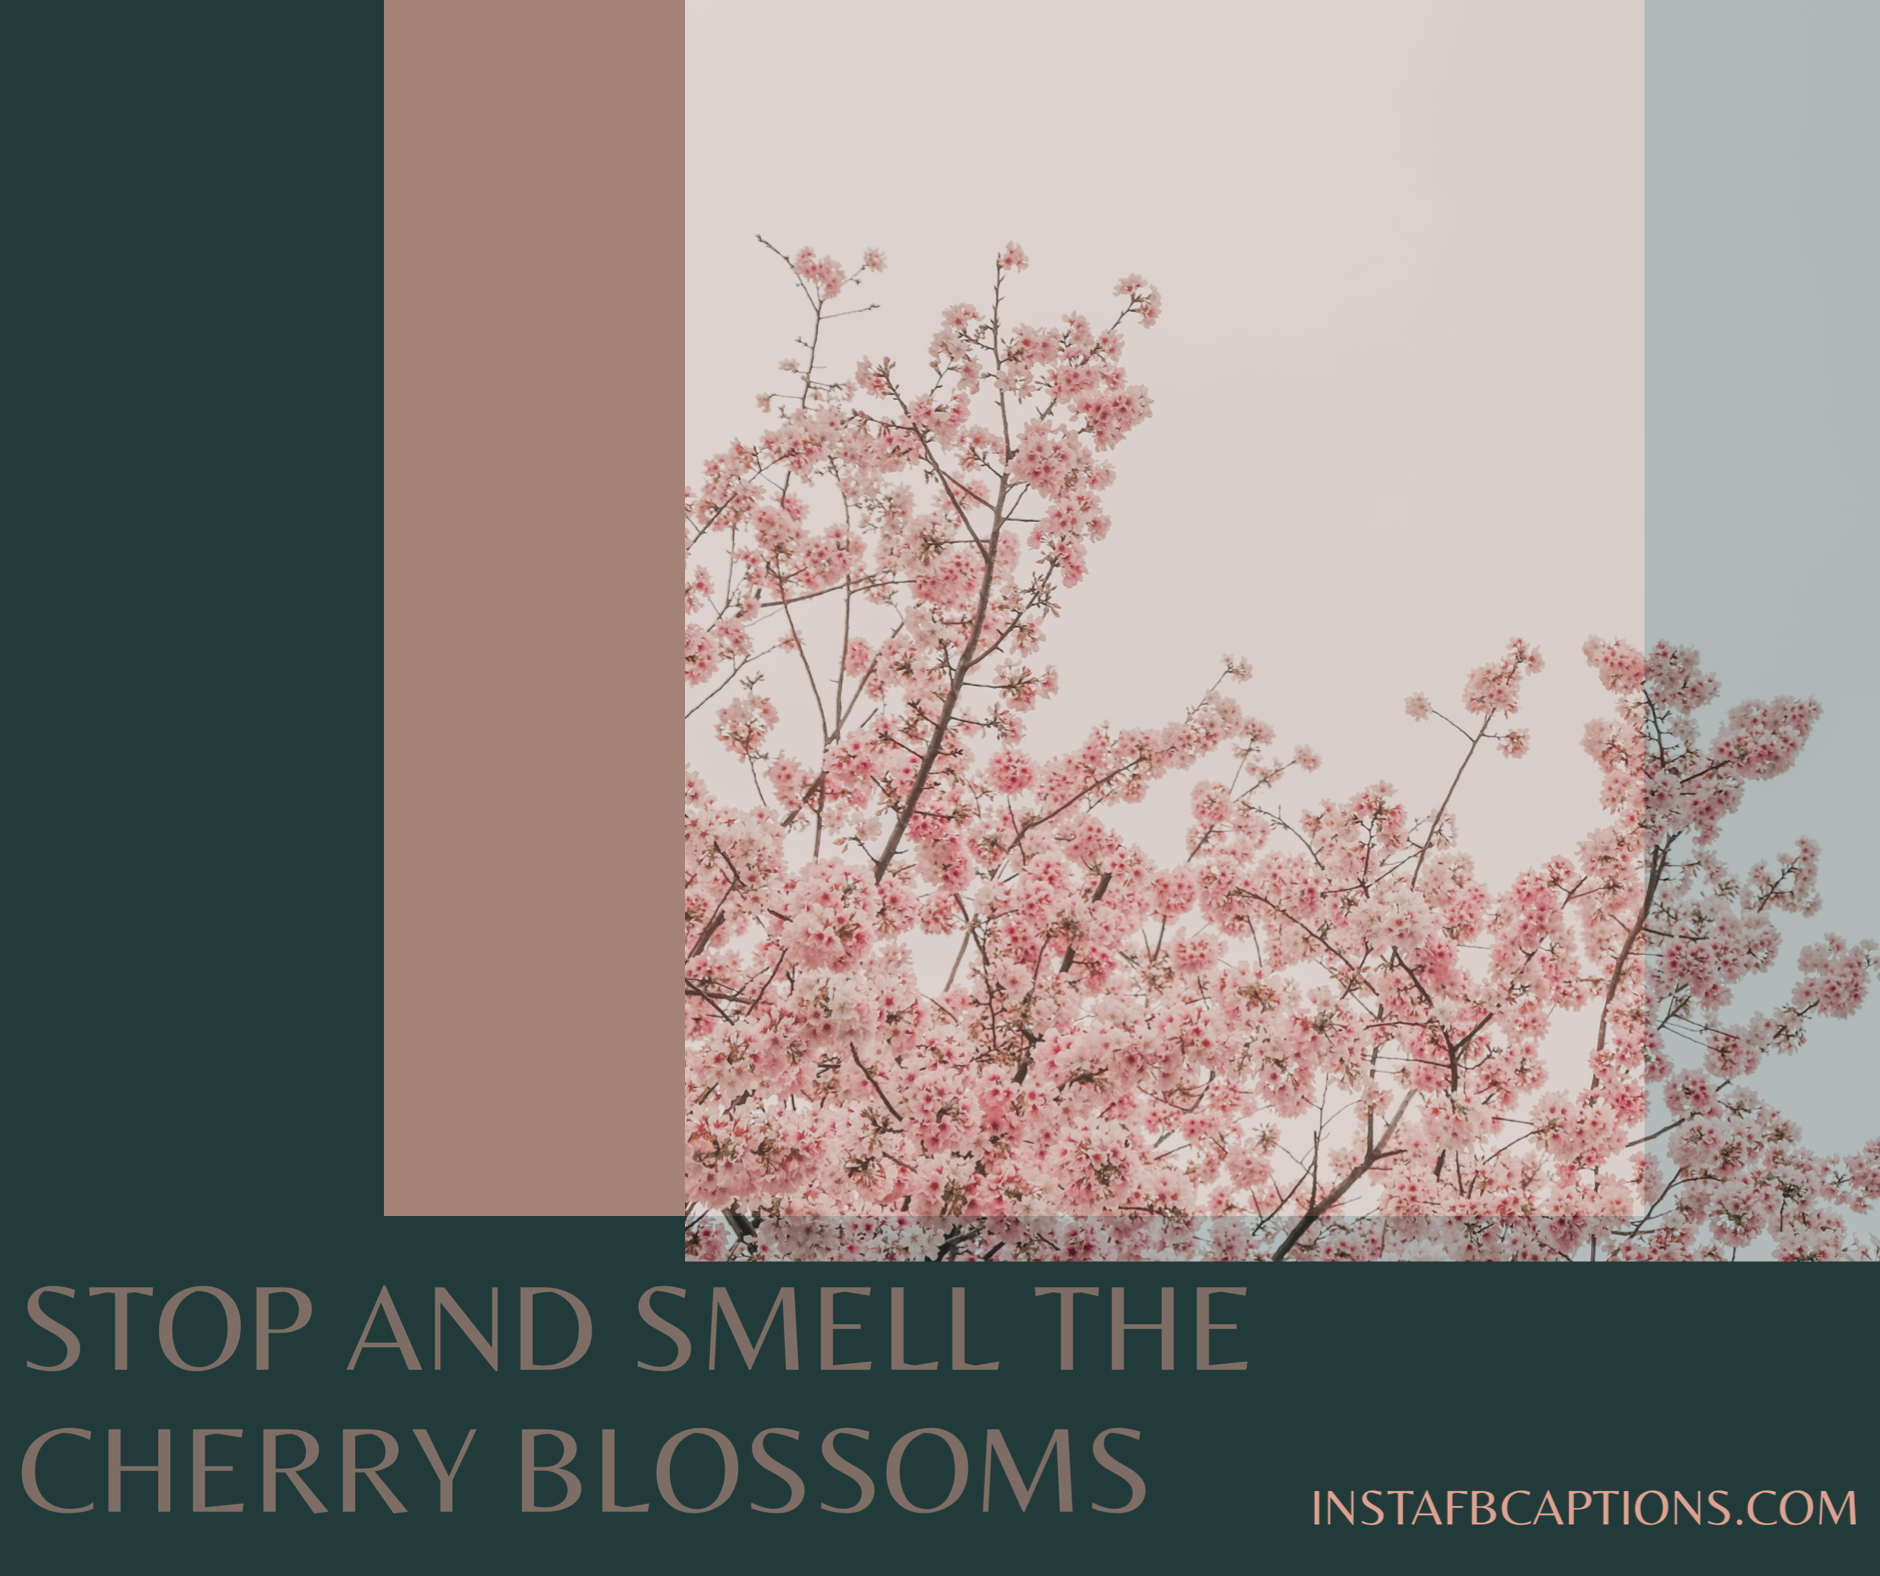 Cherry Blossom Quotes  - 9A436A7C F6AA 47B7 BECF BCC3220A82C8 - 150+ Seasonal Instagram Captions for Spring || (Cherry Blossom Flower)